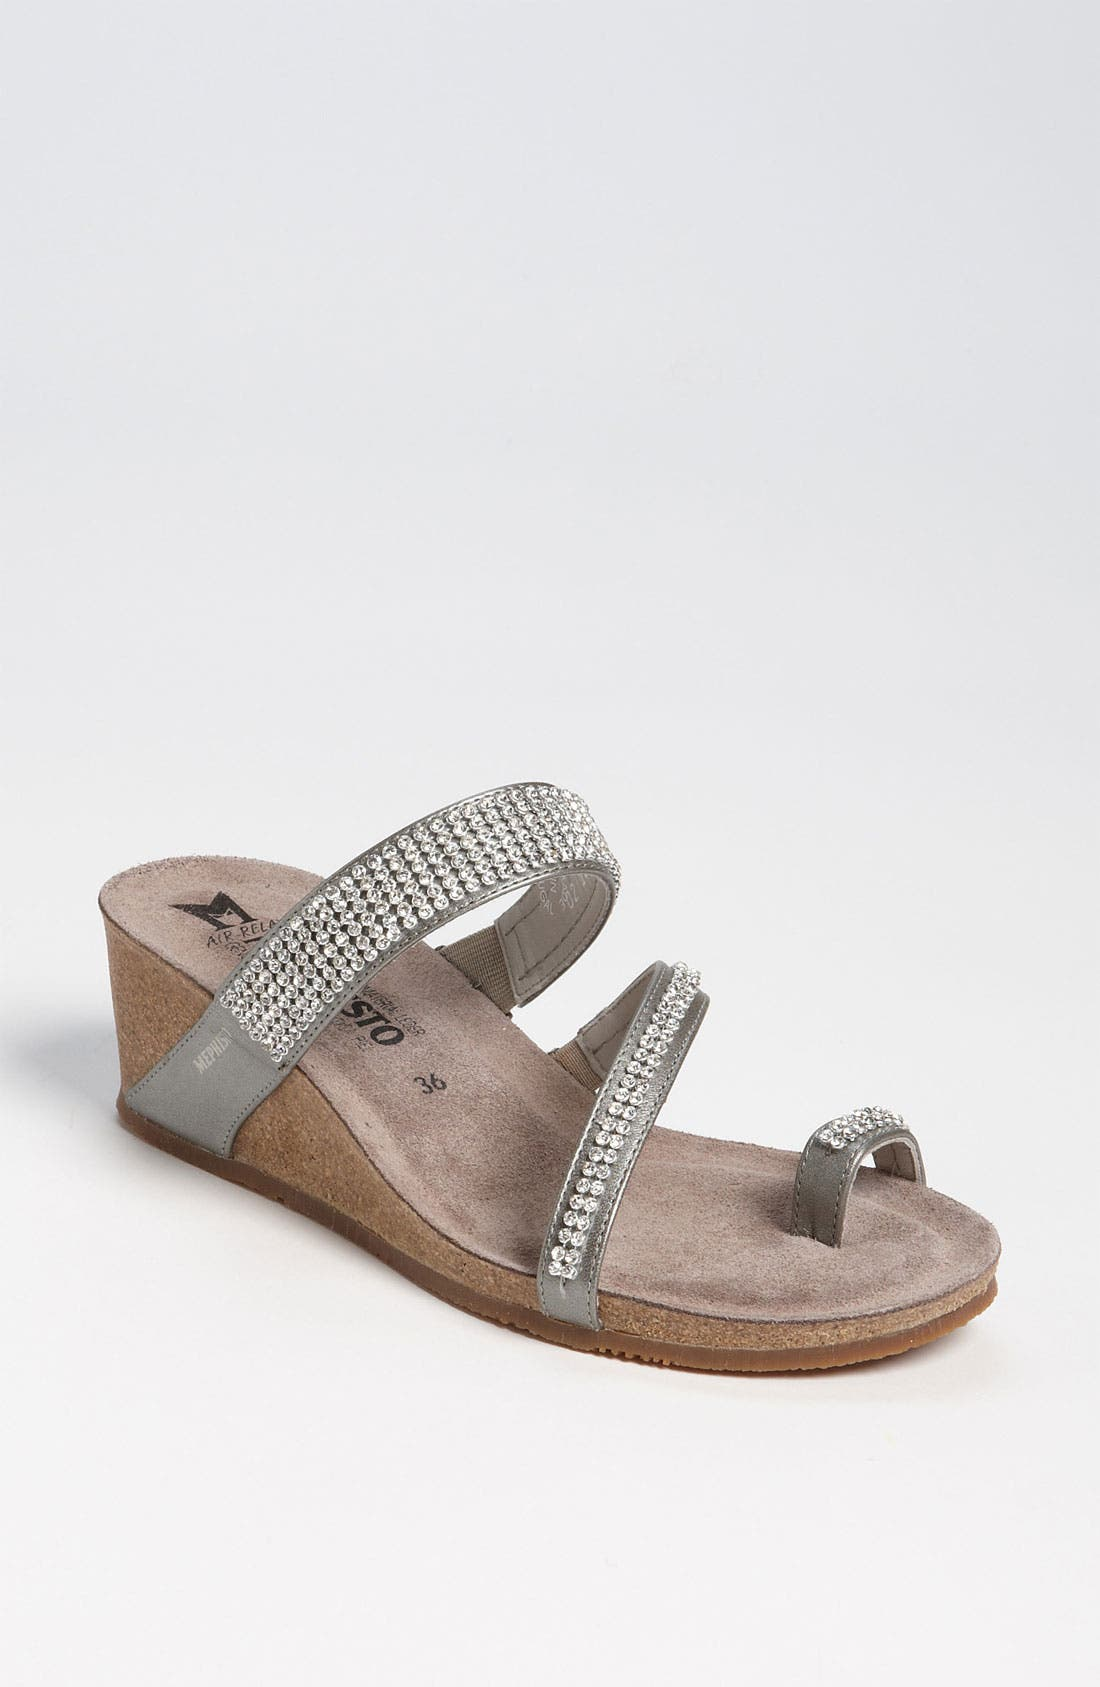 Alternate Image 1 Selected - Mephisto 'Milly' Sandal